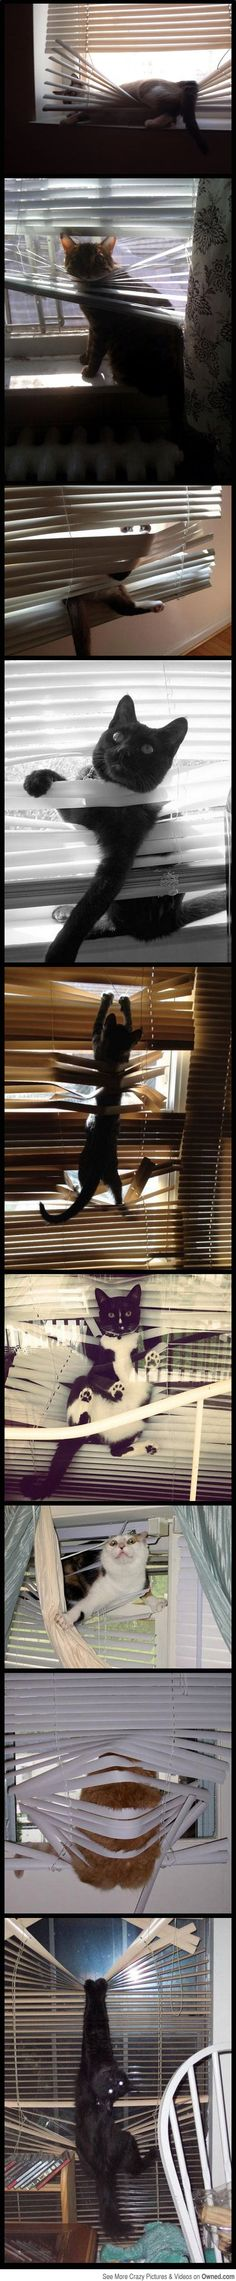 I dont think cats and blinds go well together haha